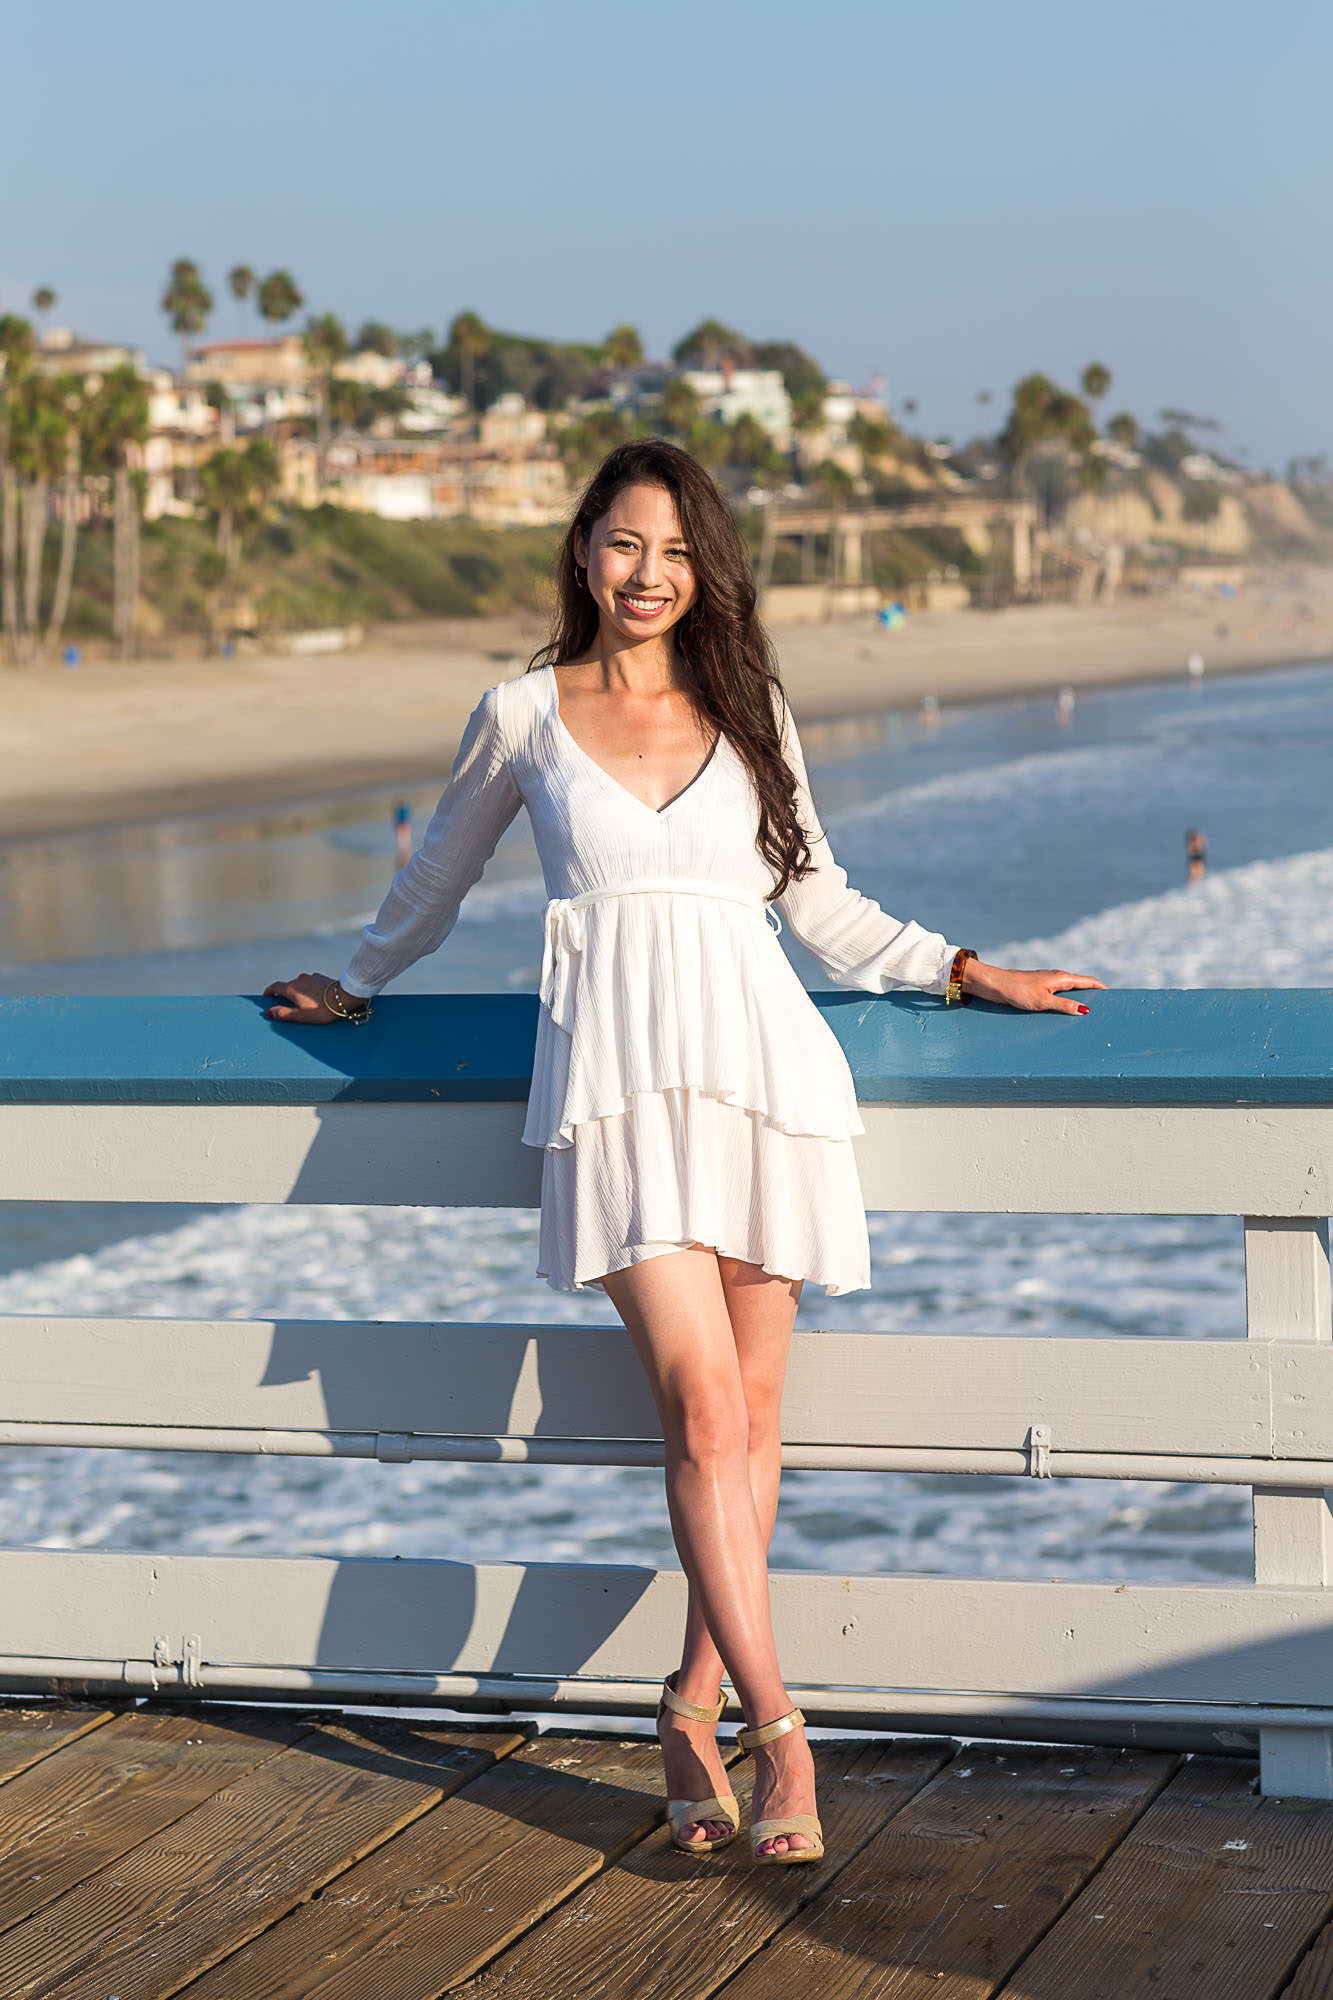 Haruka on San Clemente Pier in White Dress